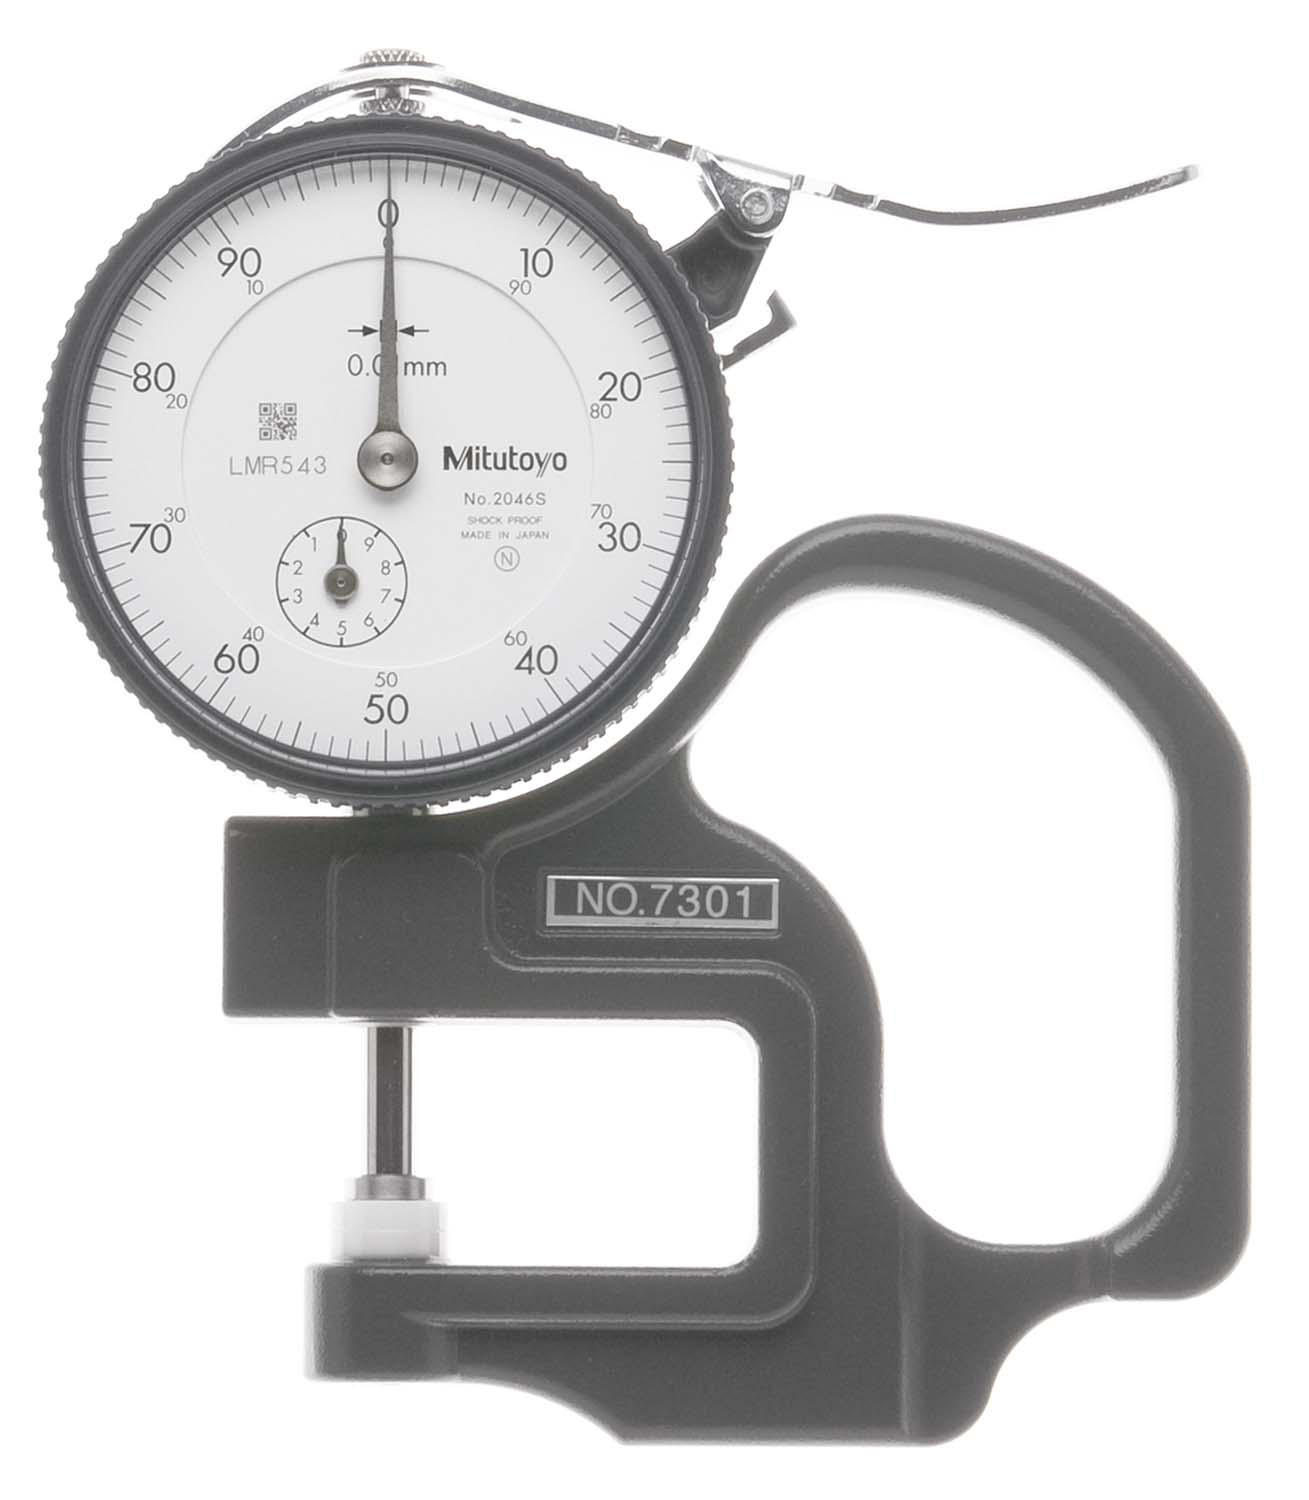 10mm Mitutoyo 7301 Dial Thickness Gage